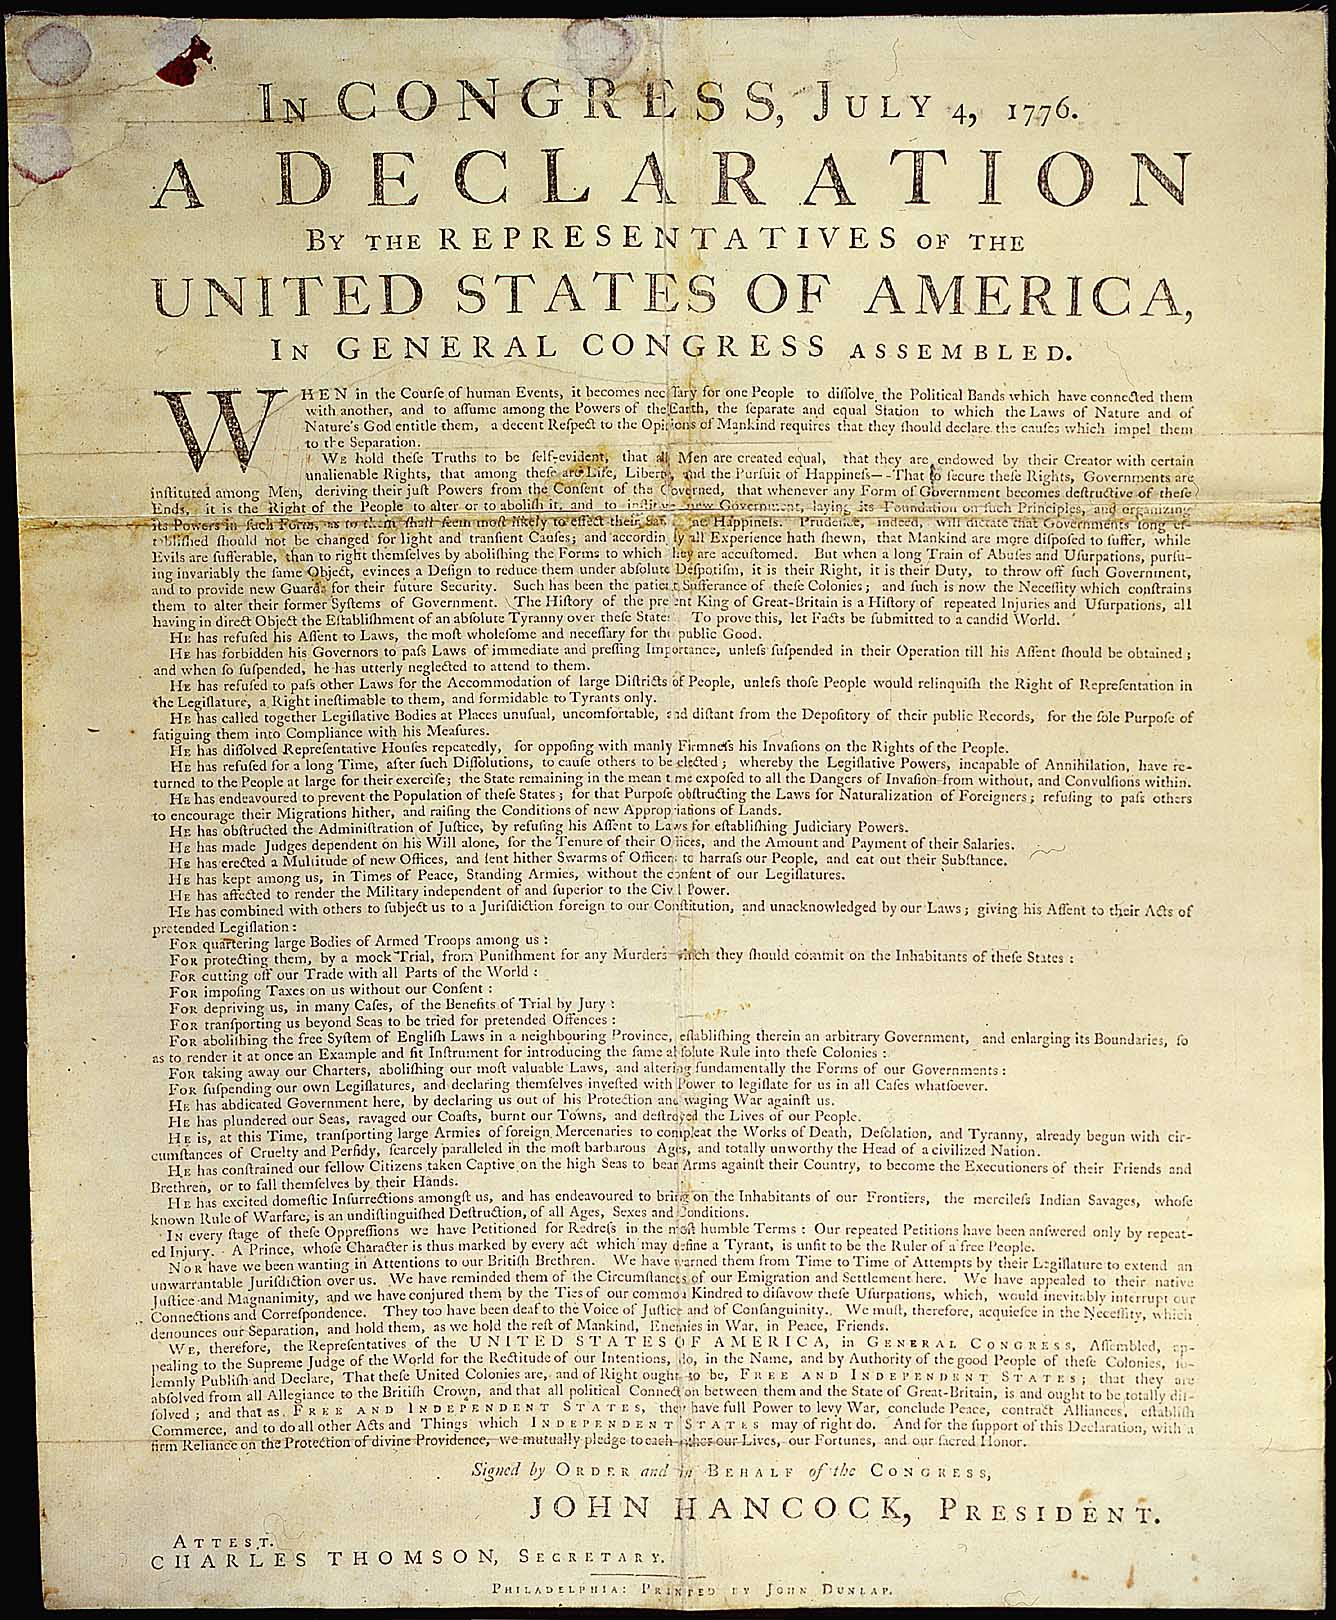 american declaration of independence in 1776 essay The american declaration of independence is a document signed by thirteen colonies declaring themselves independent of the kingdom of great britain and.